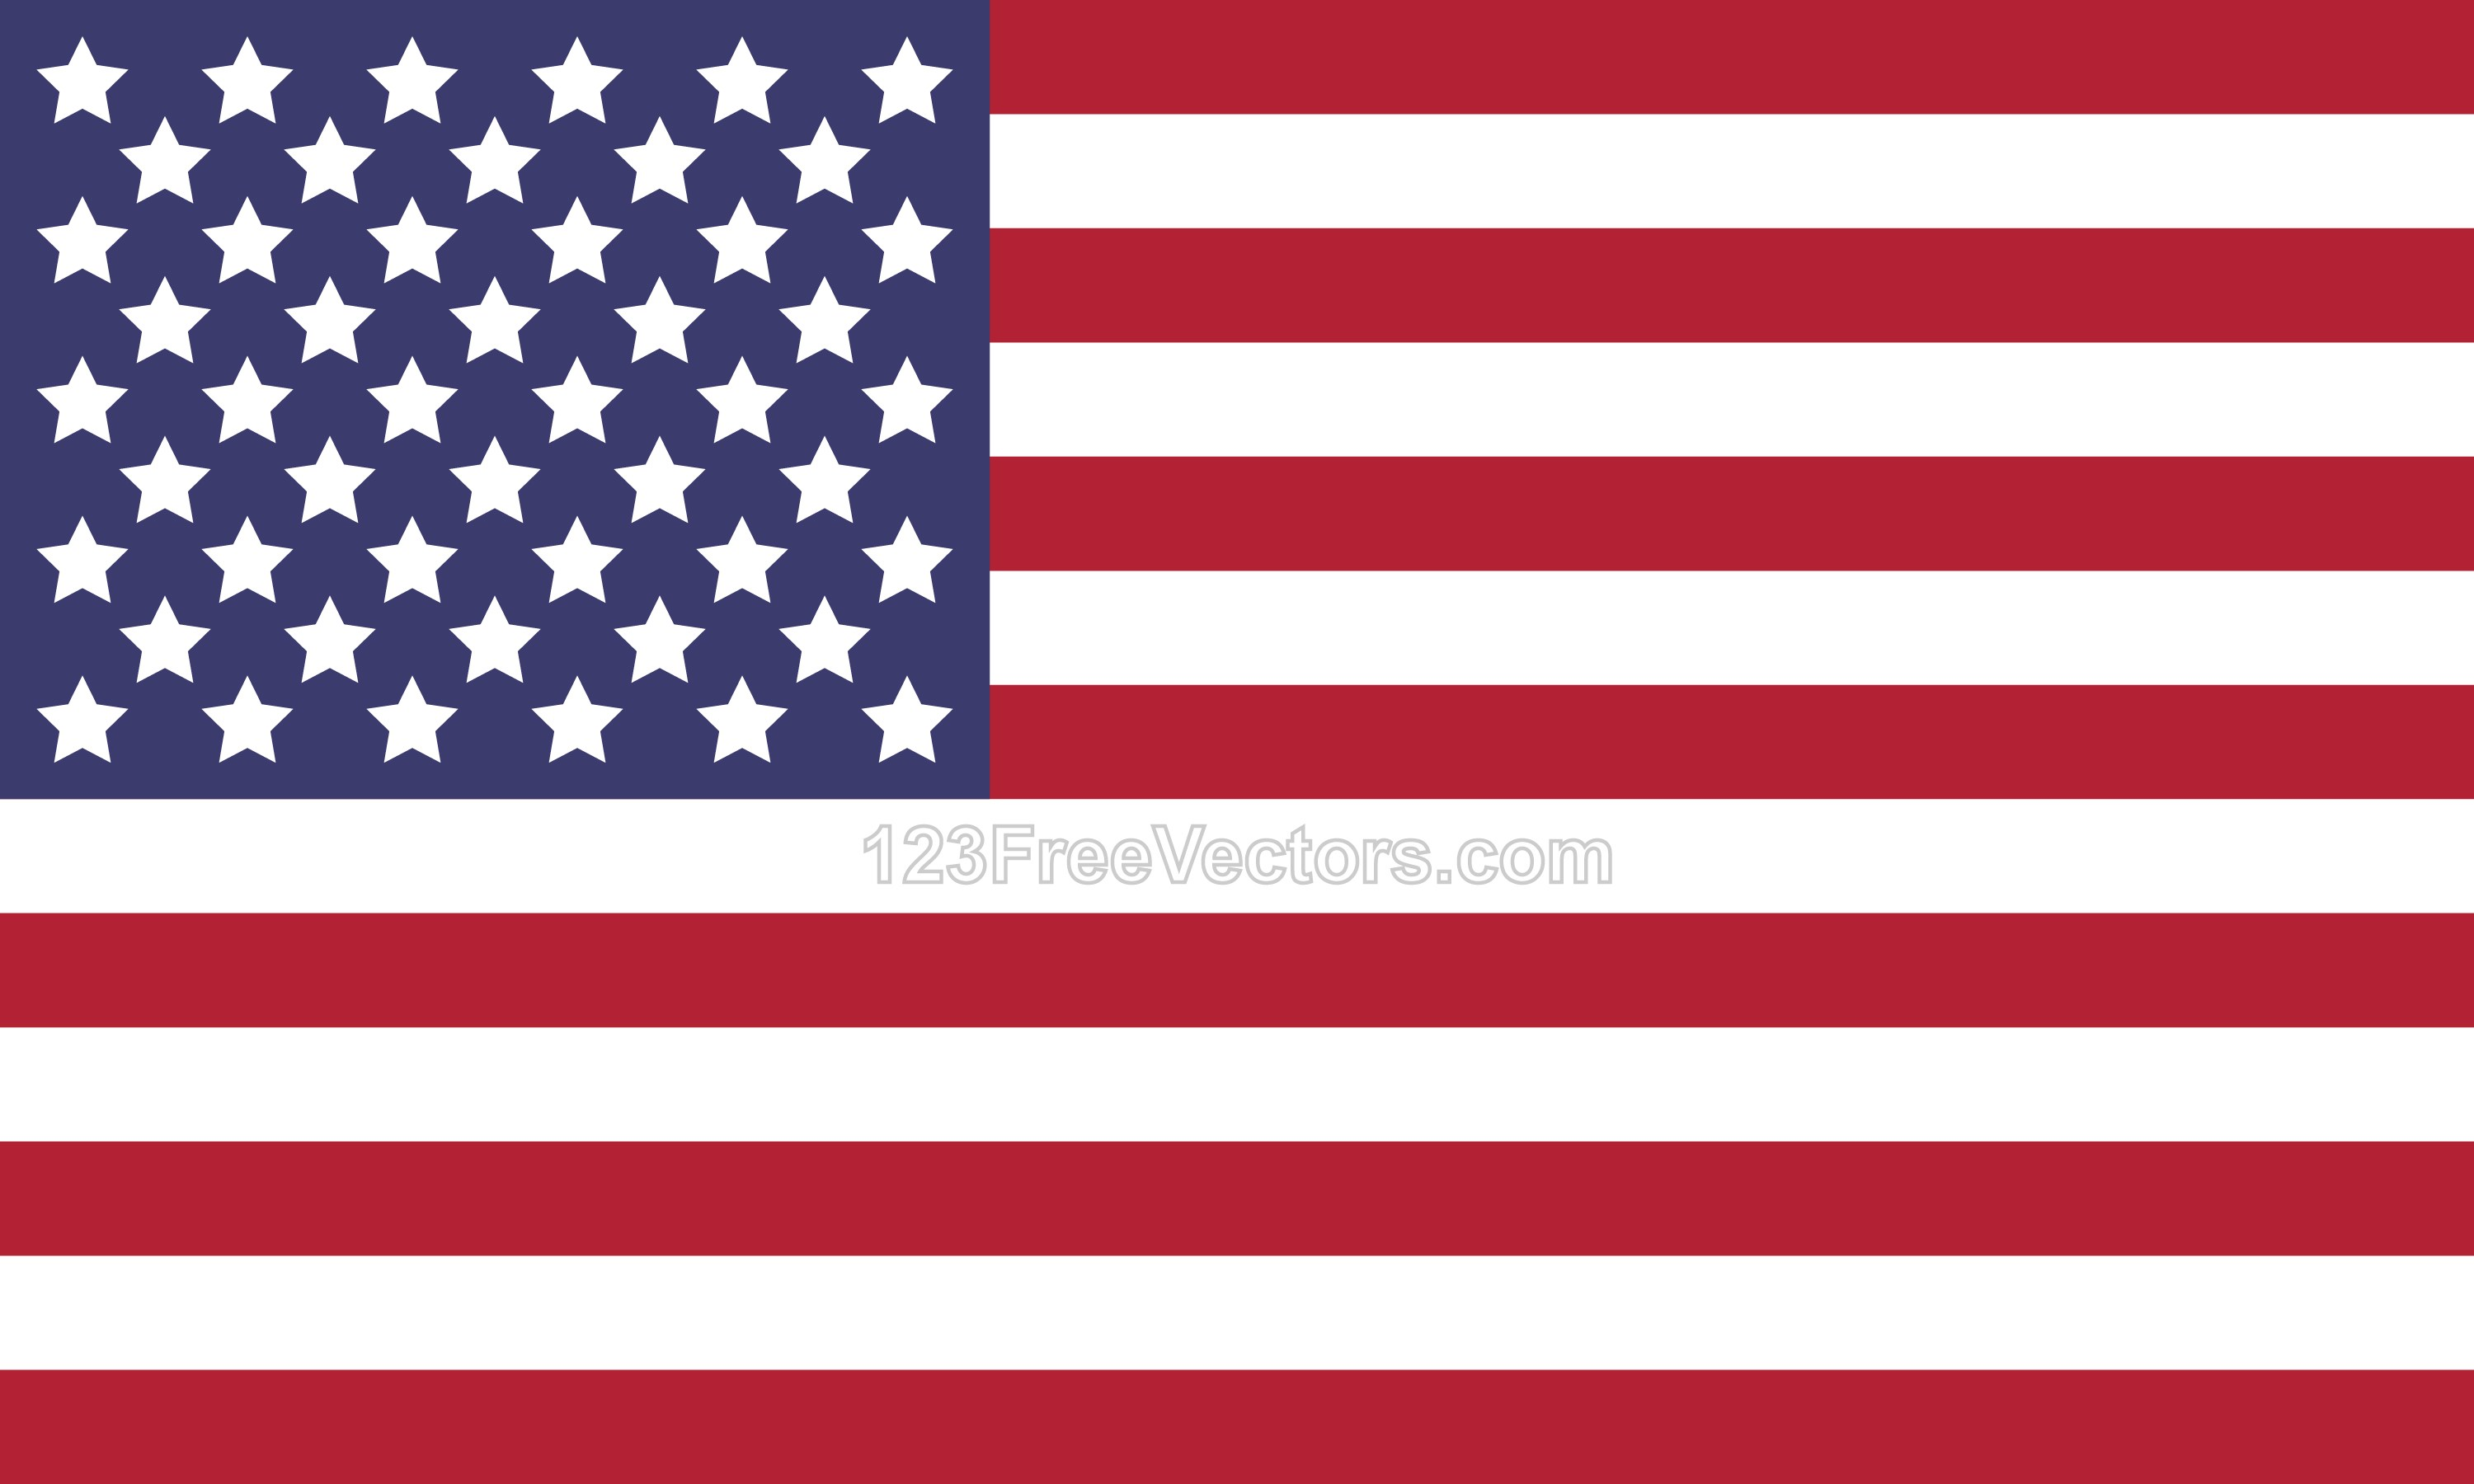 Free american flag clipart vector. Distressed